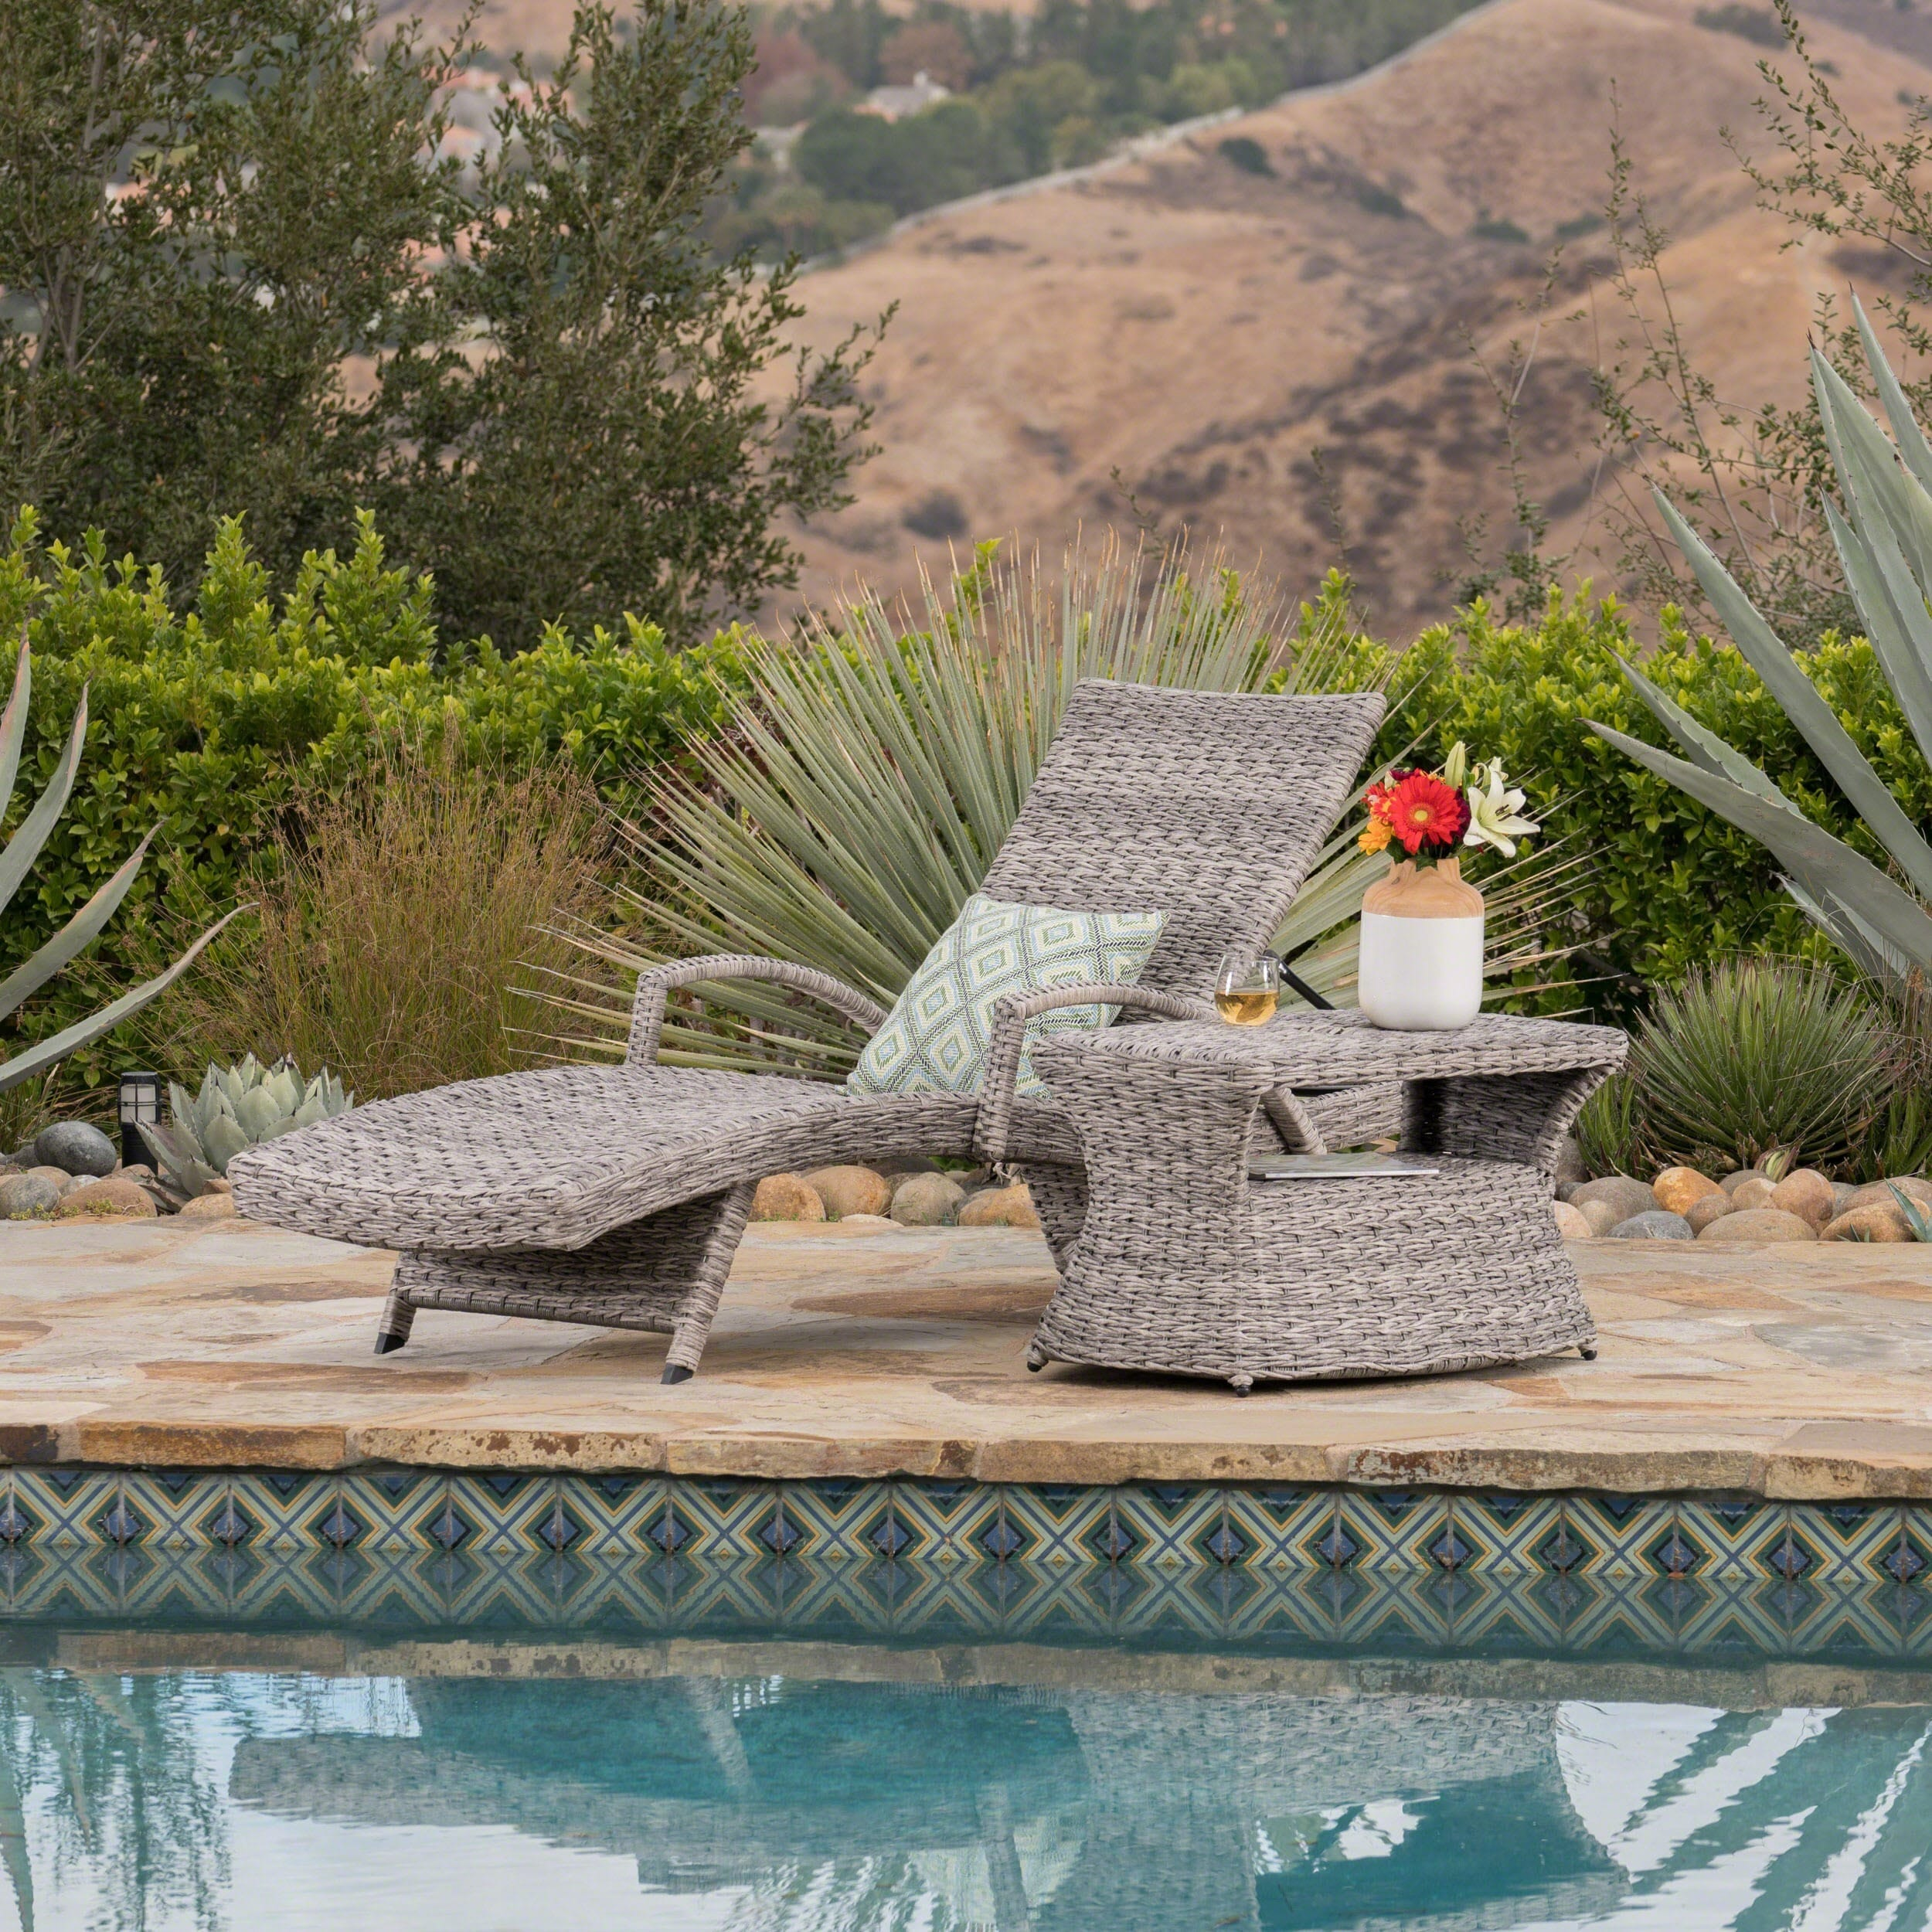 Christopher Knight Home Crete Outdoor 2-piece Armed Aluminum Wicker Chaise Lounge Set by